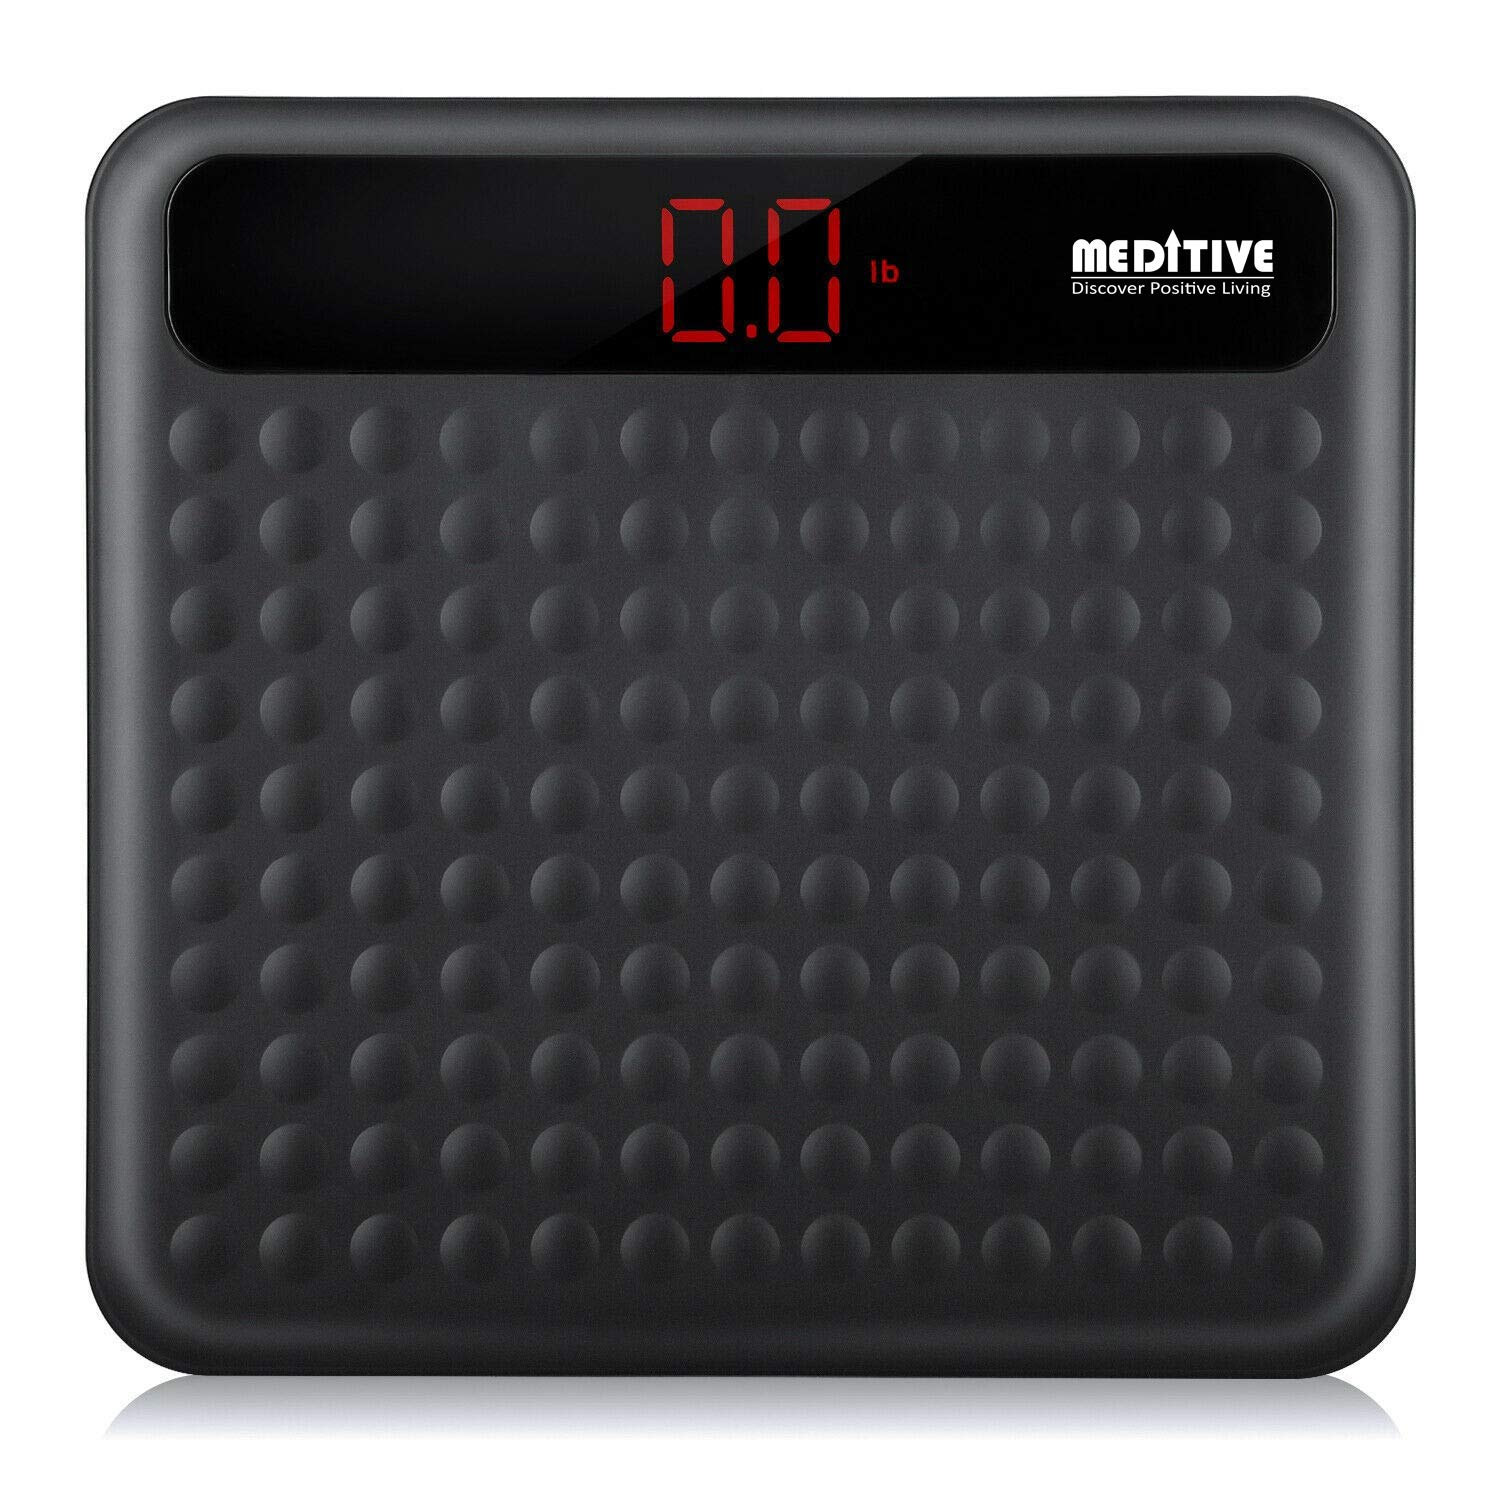 MEDITIVE Digital Human Weight Scale